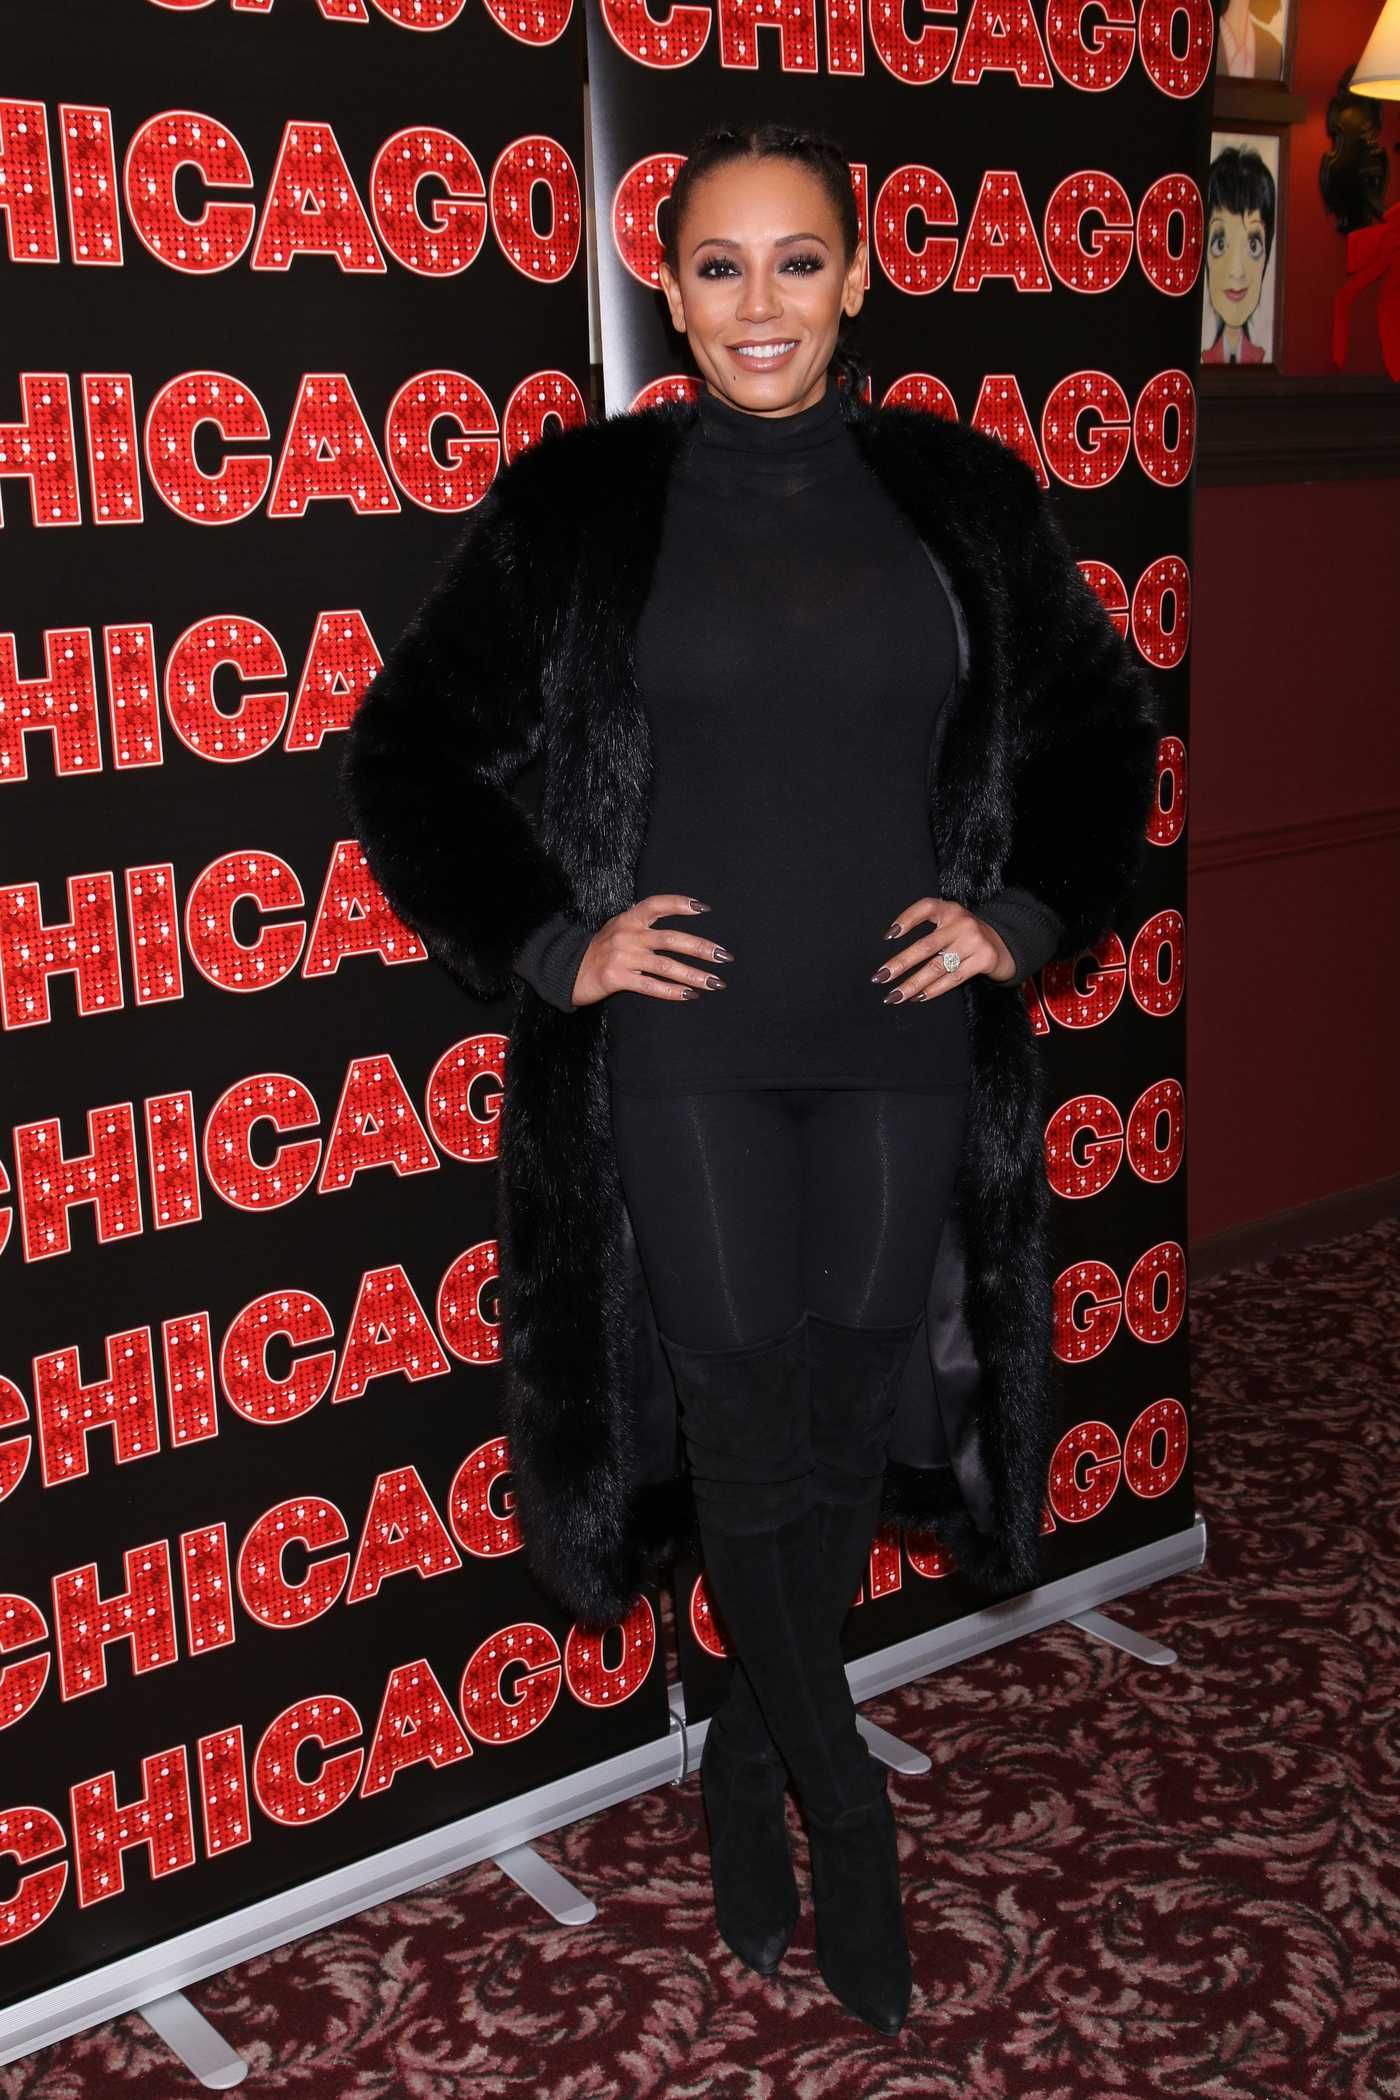 Melanie Brown at the Broadway Musical Chicago Photocall in NY 12/21/2016